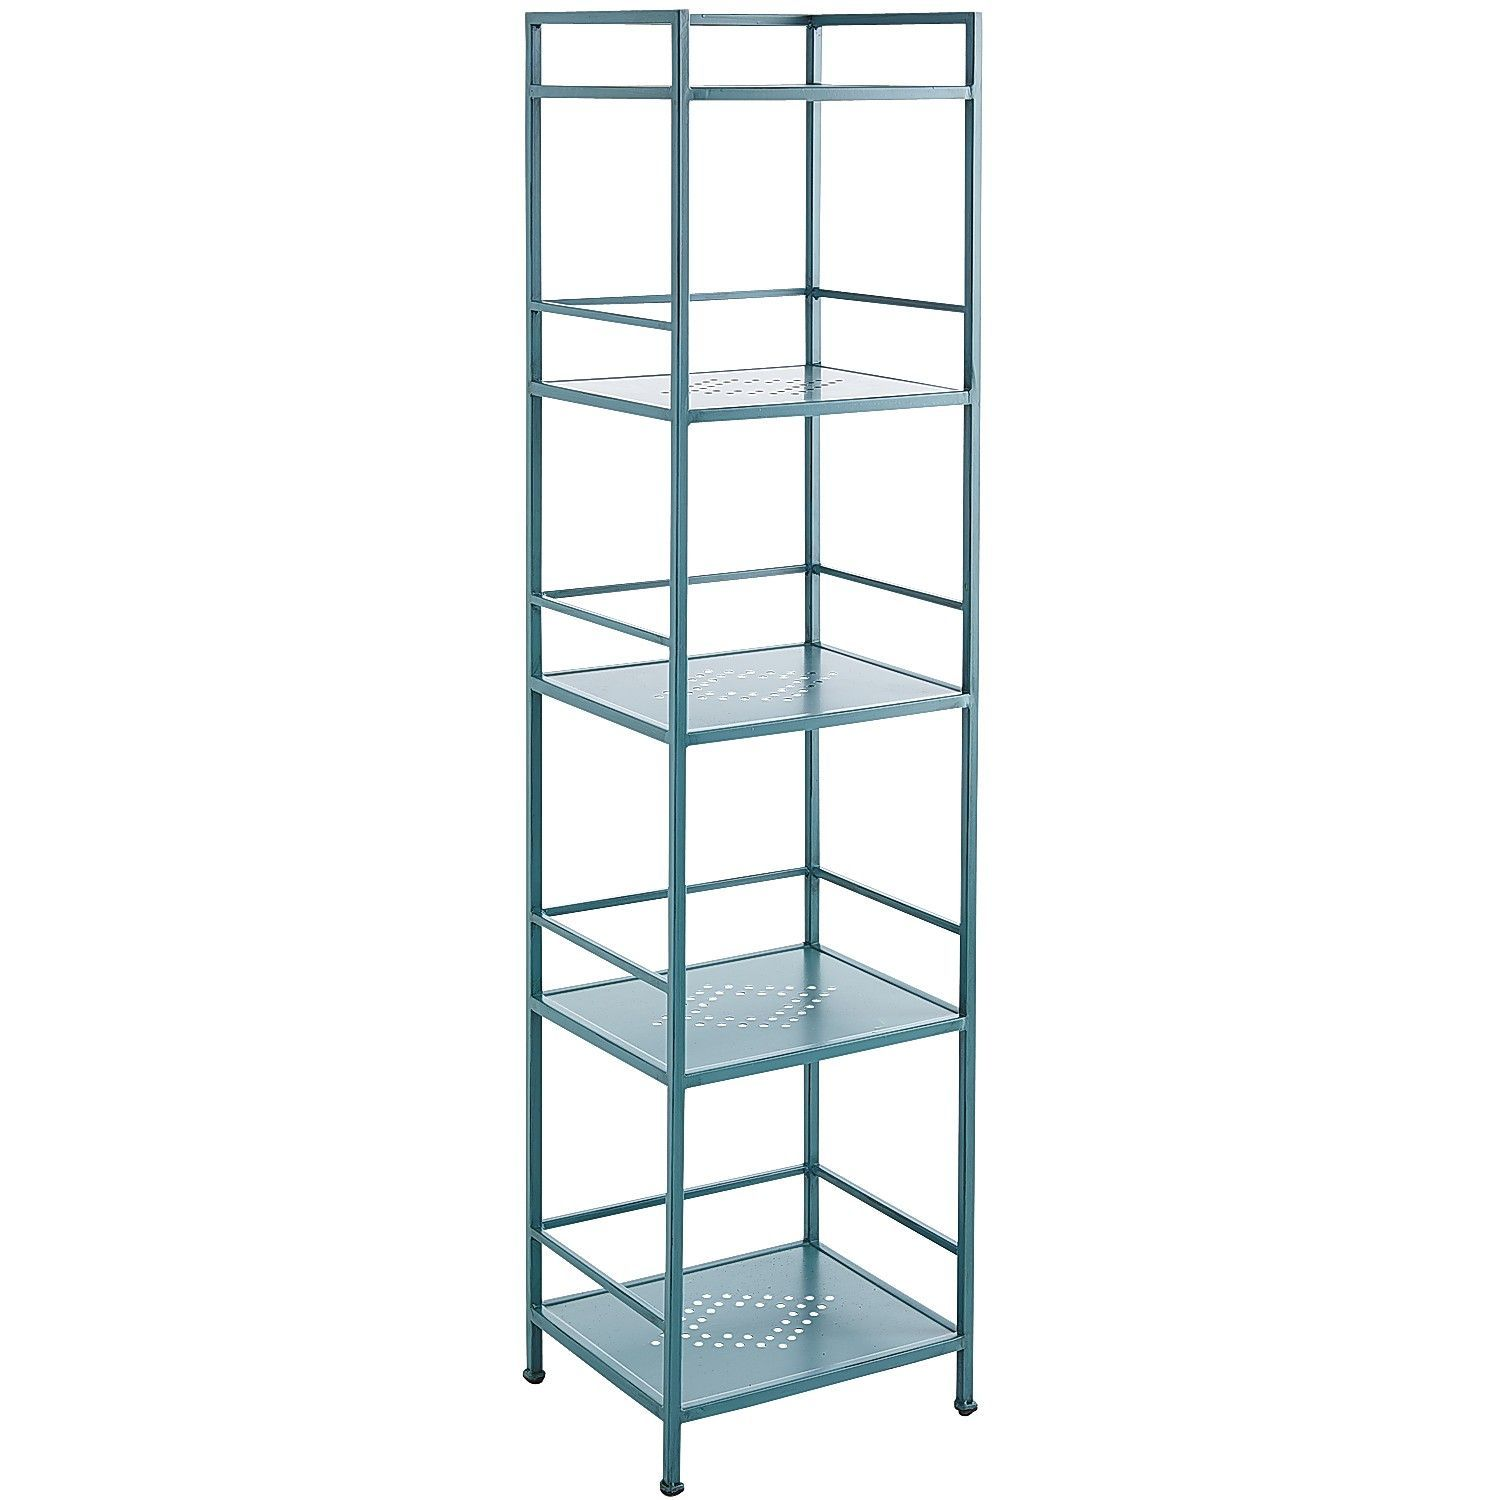 Weldon Tall Shelf - Teal | Pier 1 Imports For small corner near ...